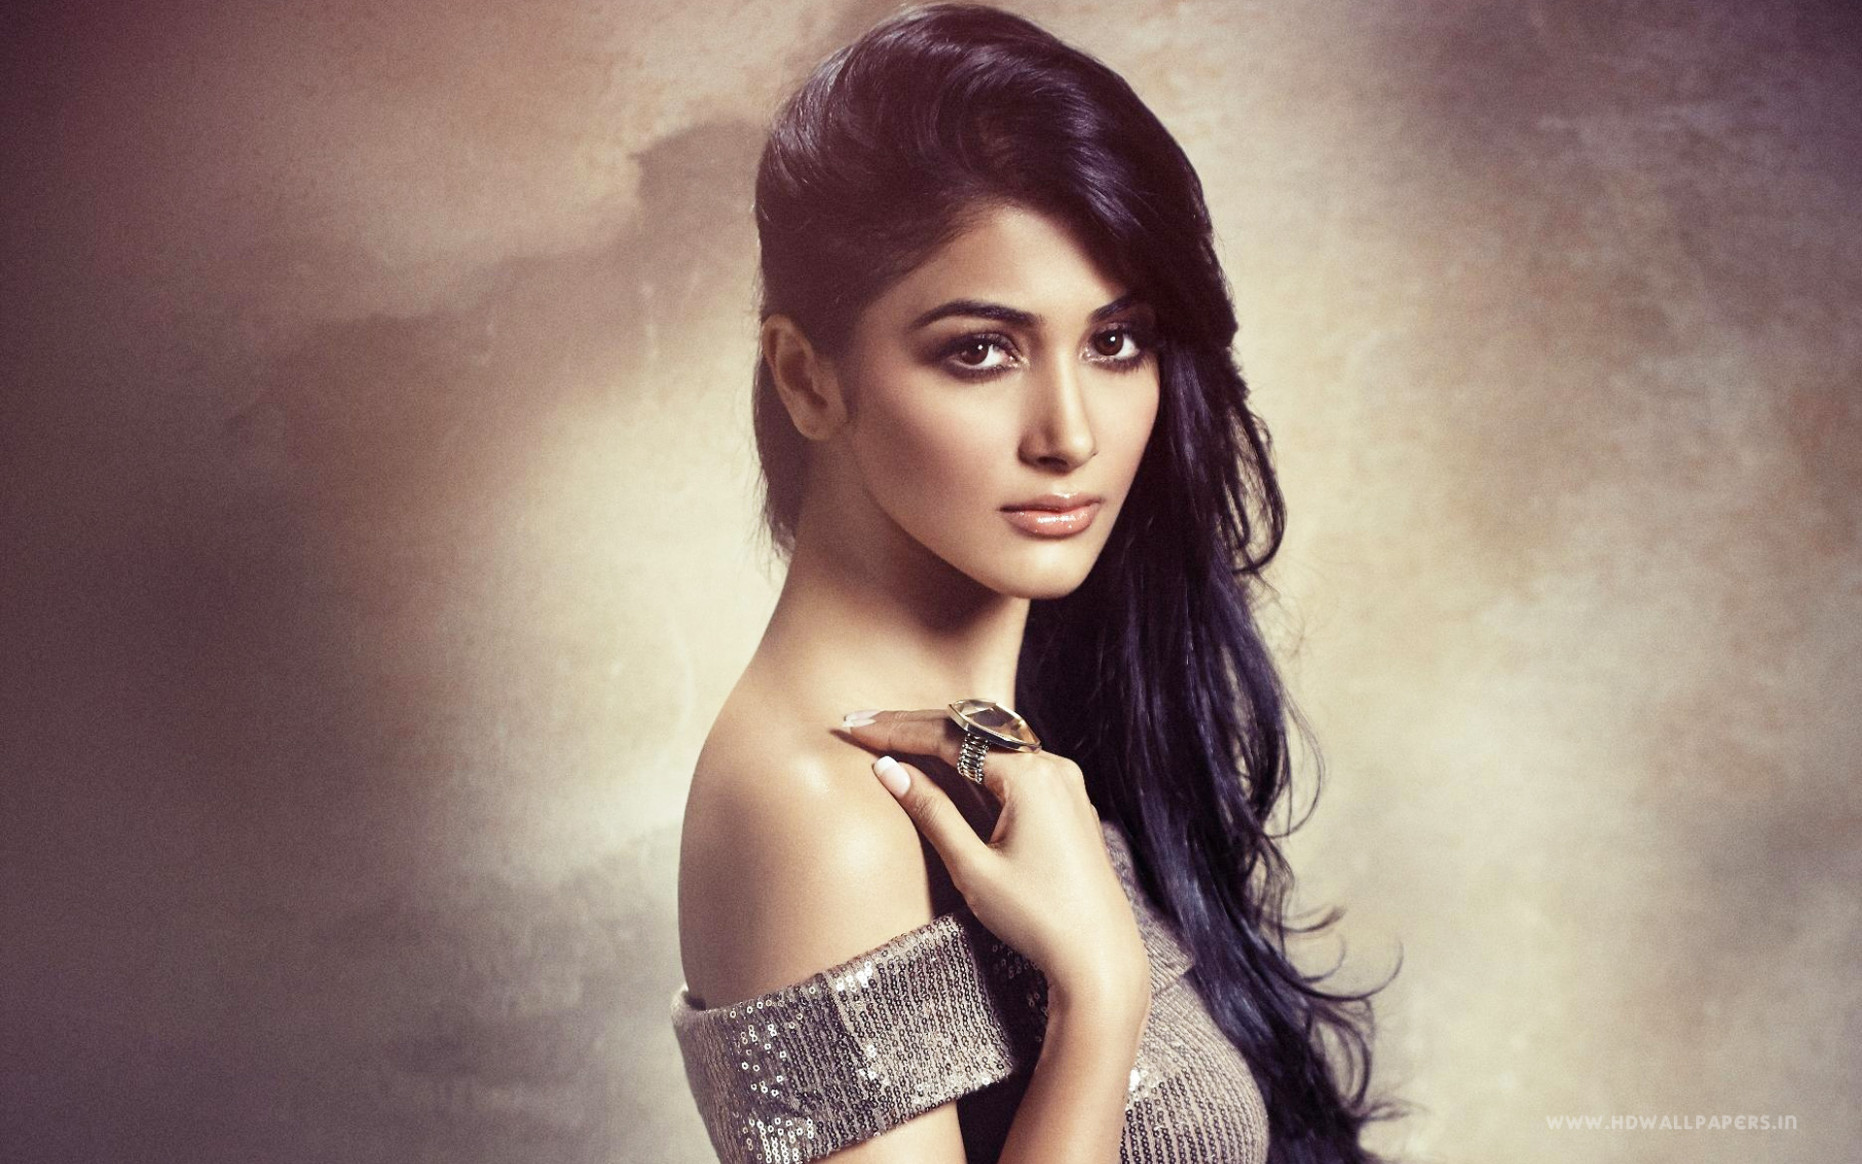 Wallpapers Of Bollywood Actress - bollywood wallpaper gallery